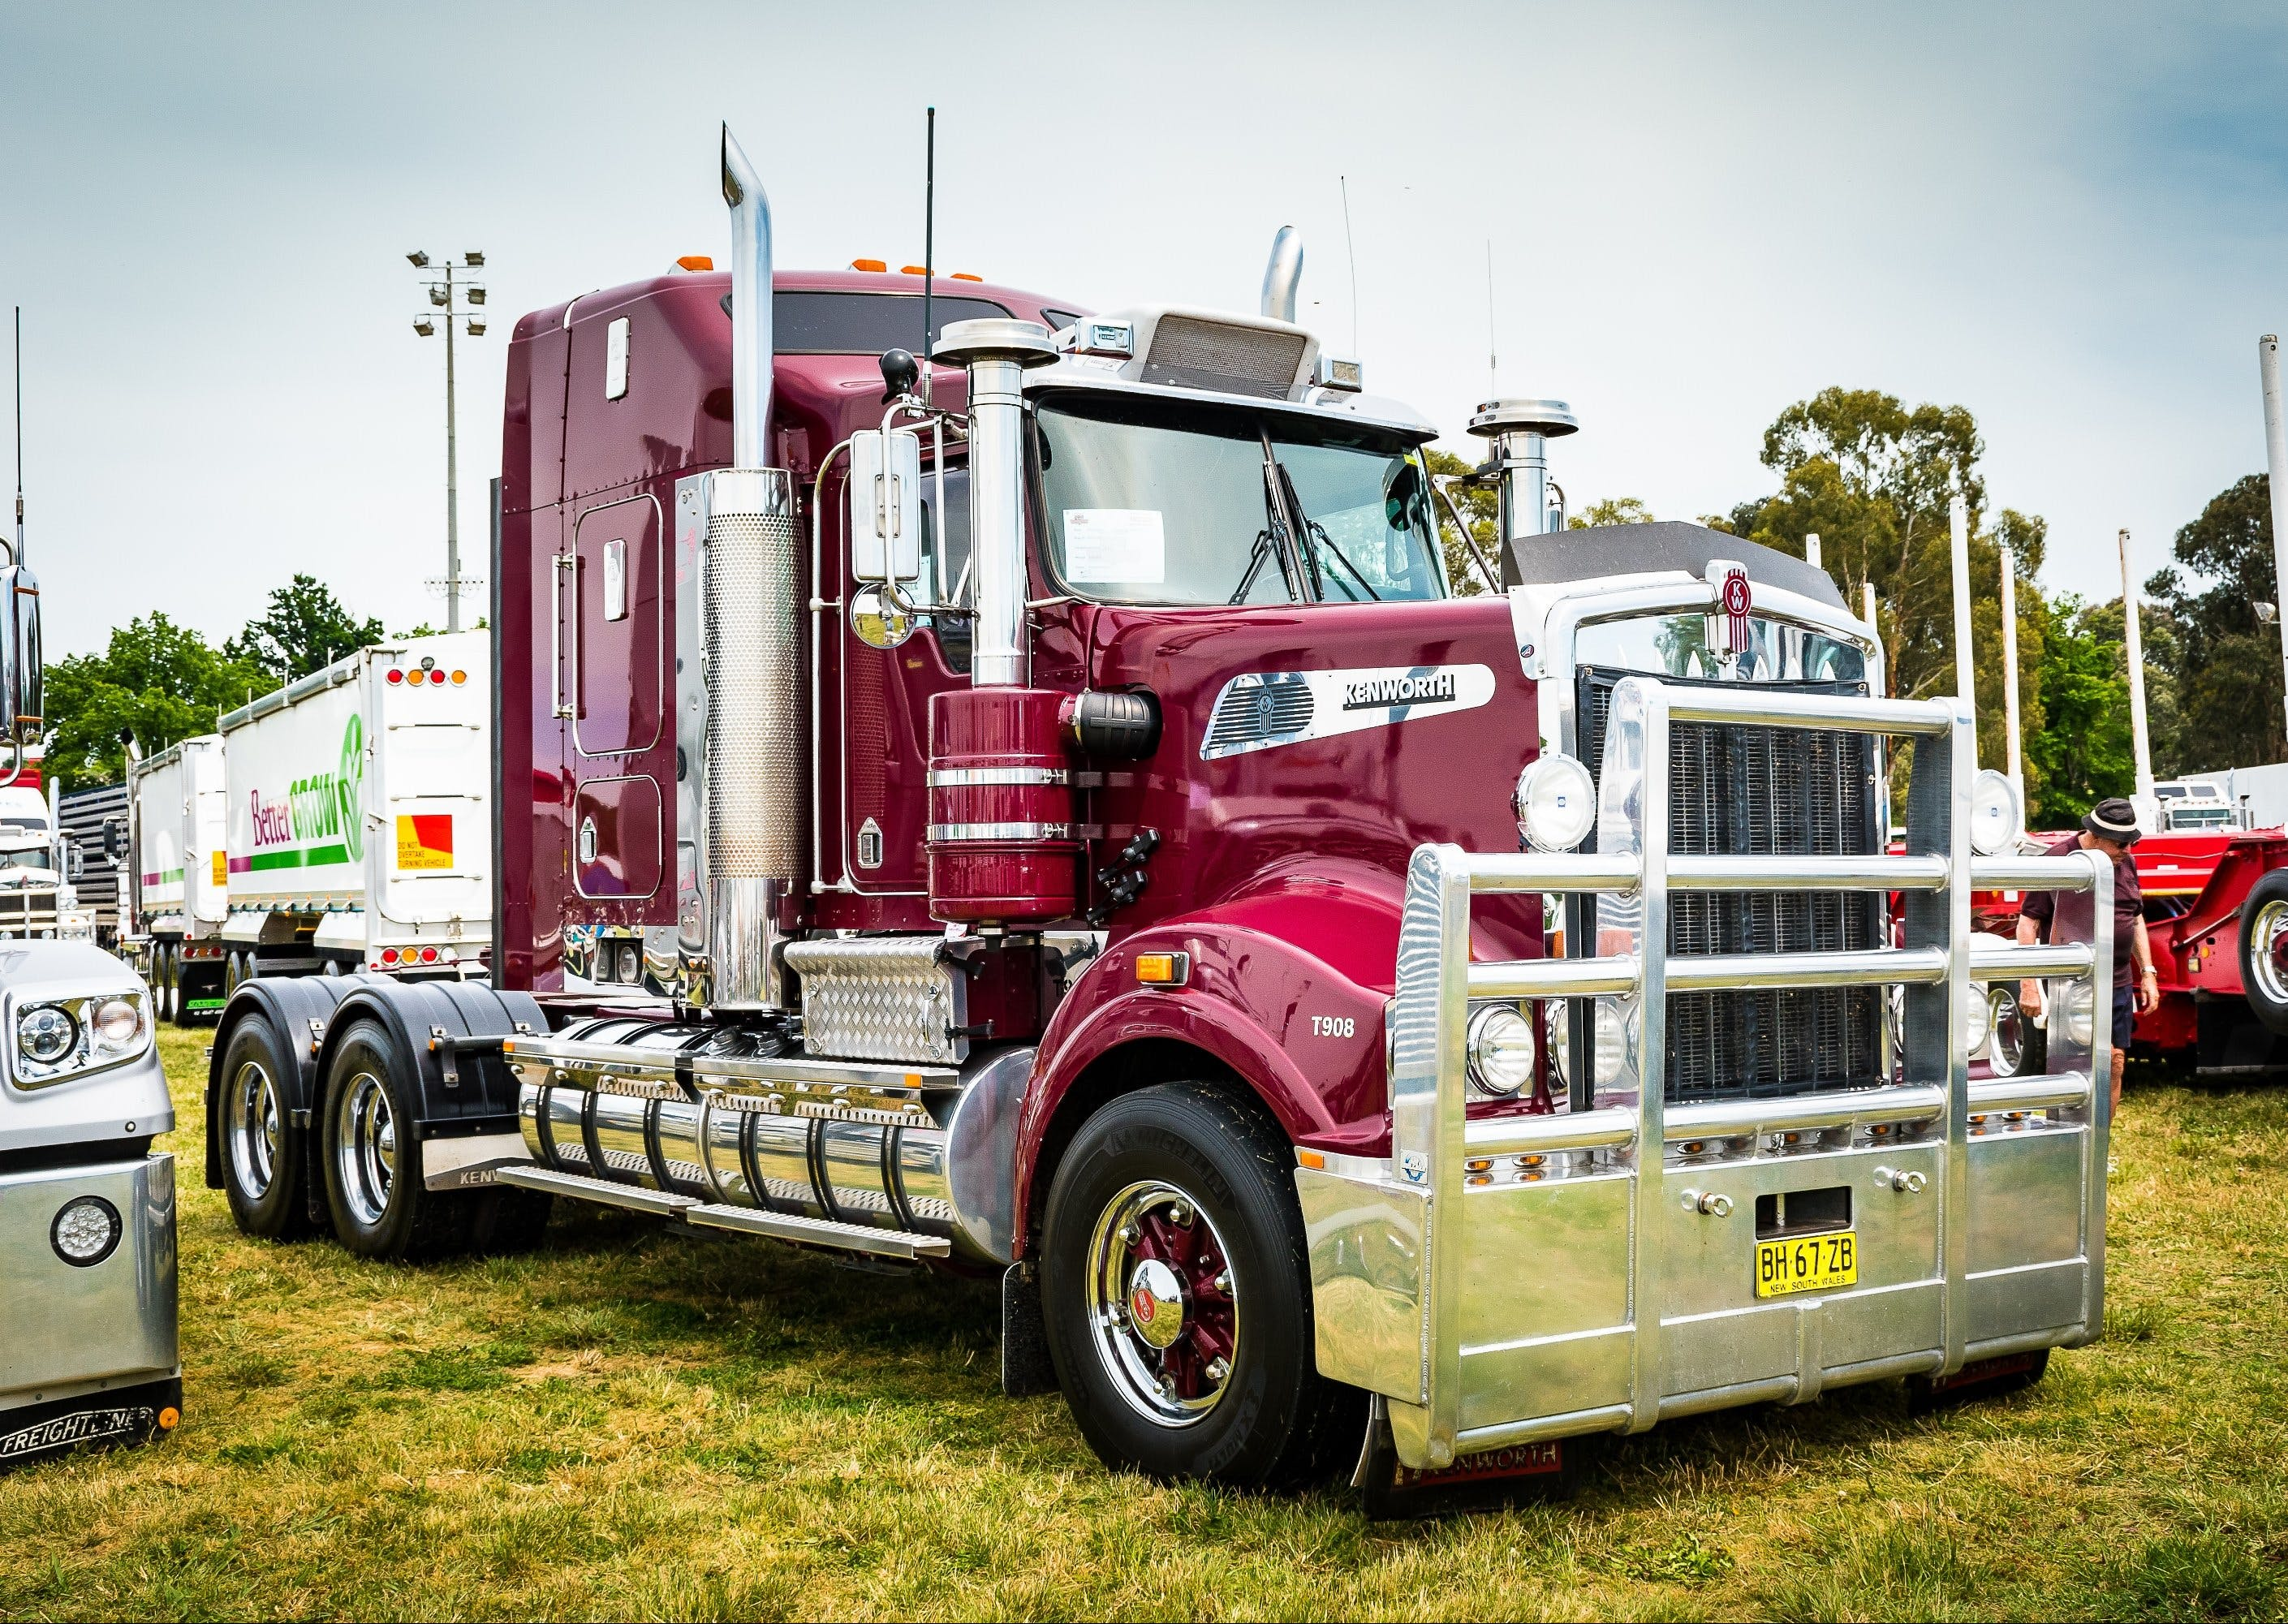 Dane Ballinger Memorial Truck Show - Accommodation Search